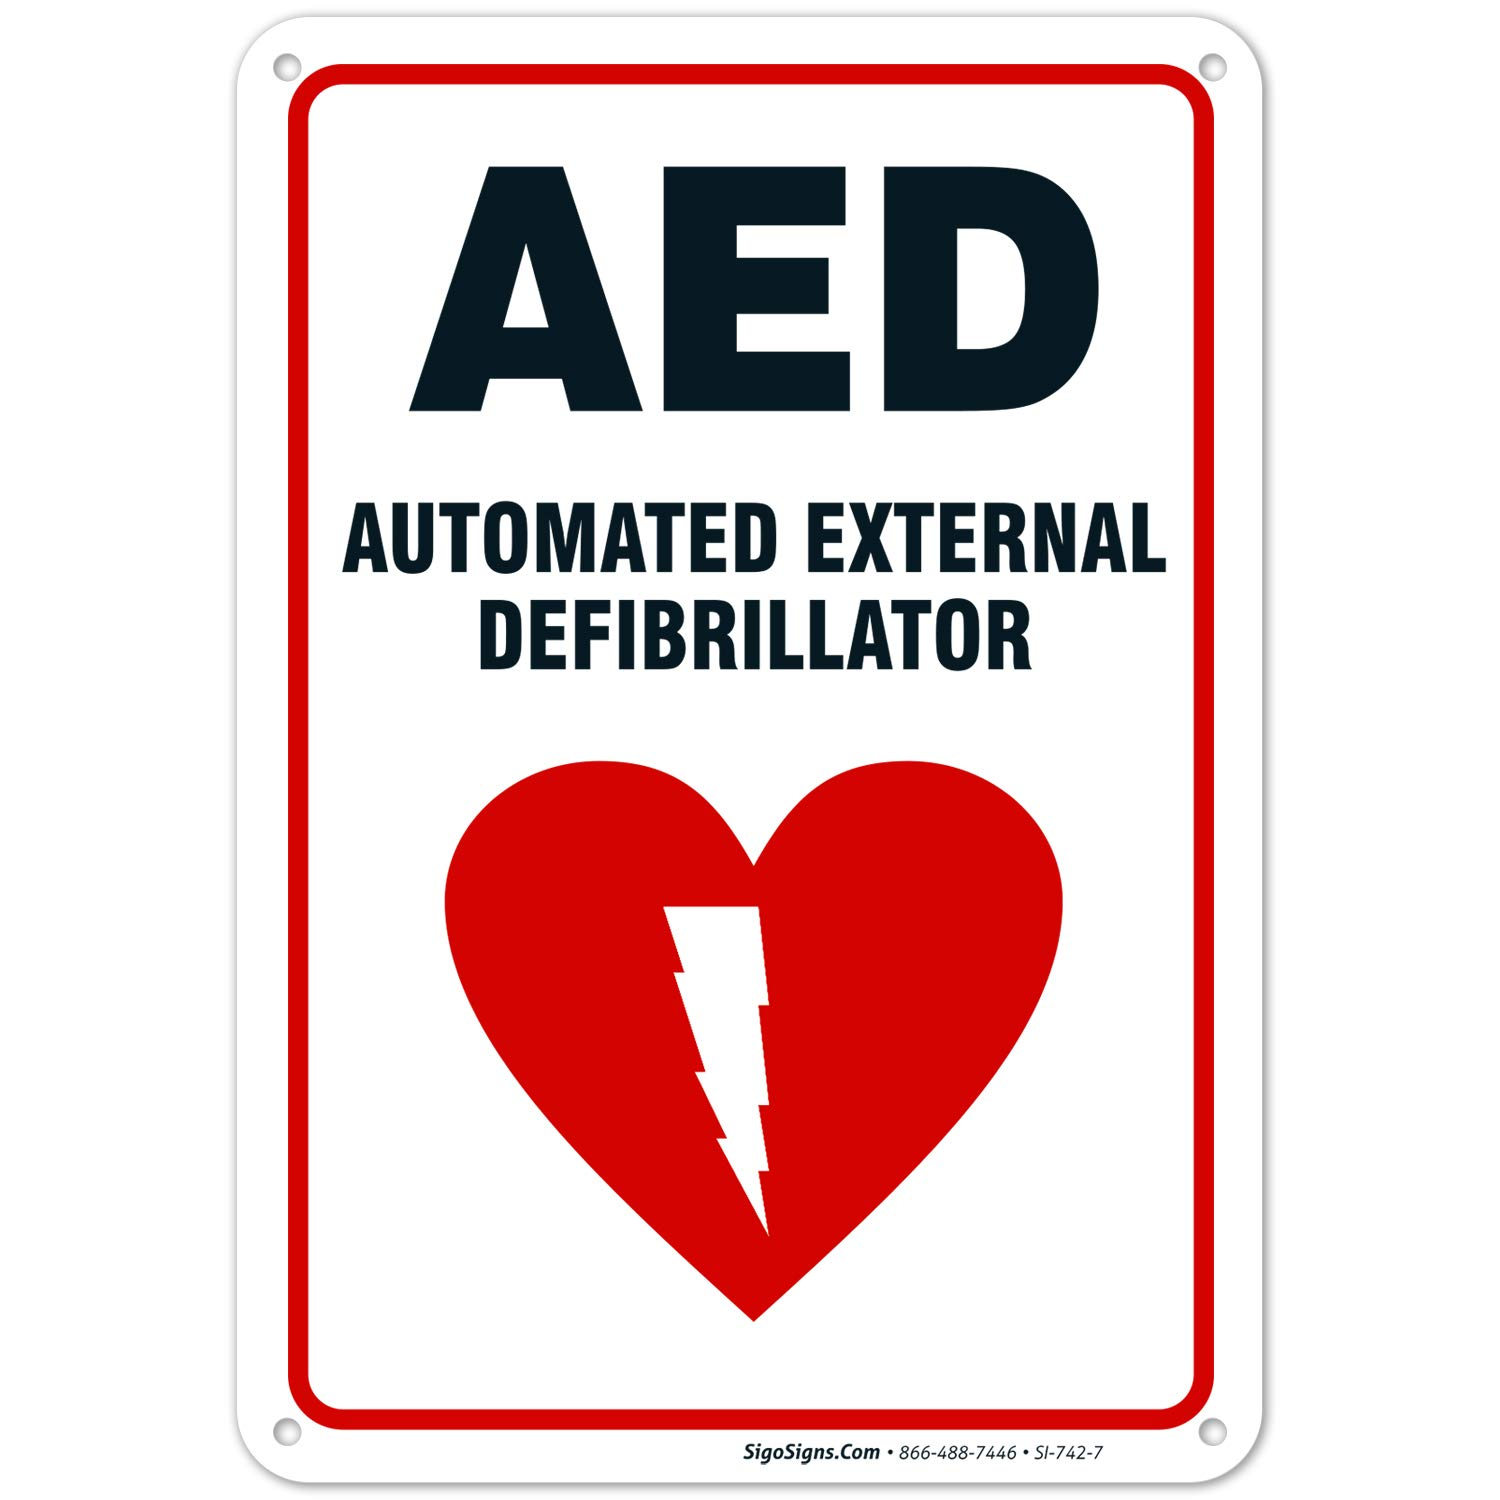 Aed Sign Automated External Defibrillator Sign 10x7 Rust Free Aluminum Weather Fade Resistant Easy Mounting Indoor Outdoor Use Made In Usa By Sigo Signs Amazon Ae Tools Home Improvement